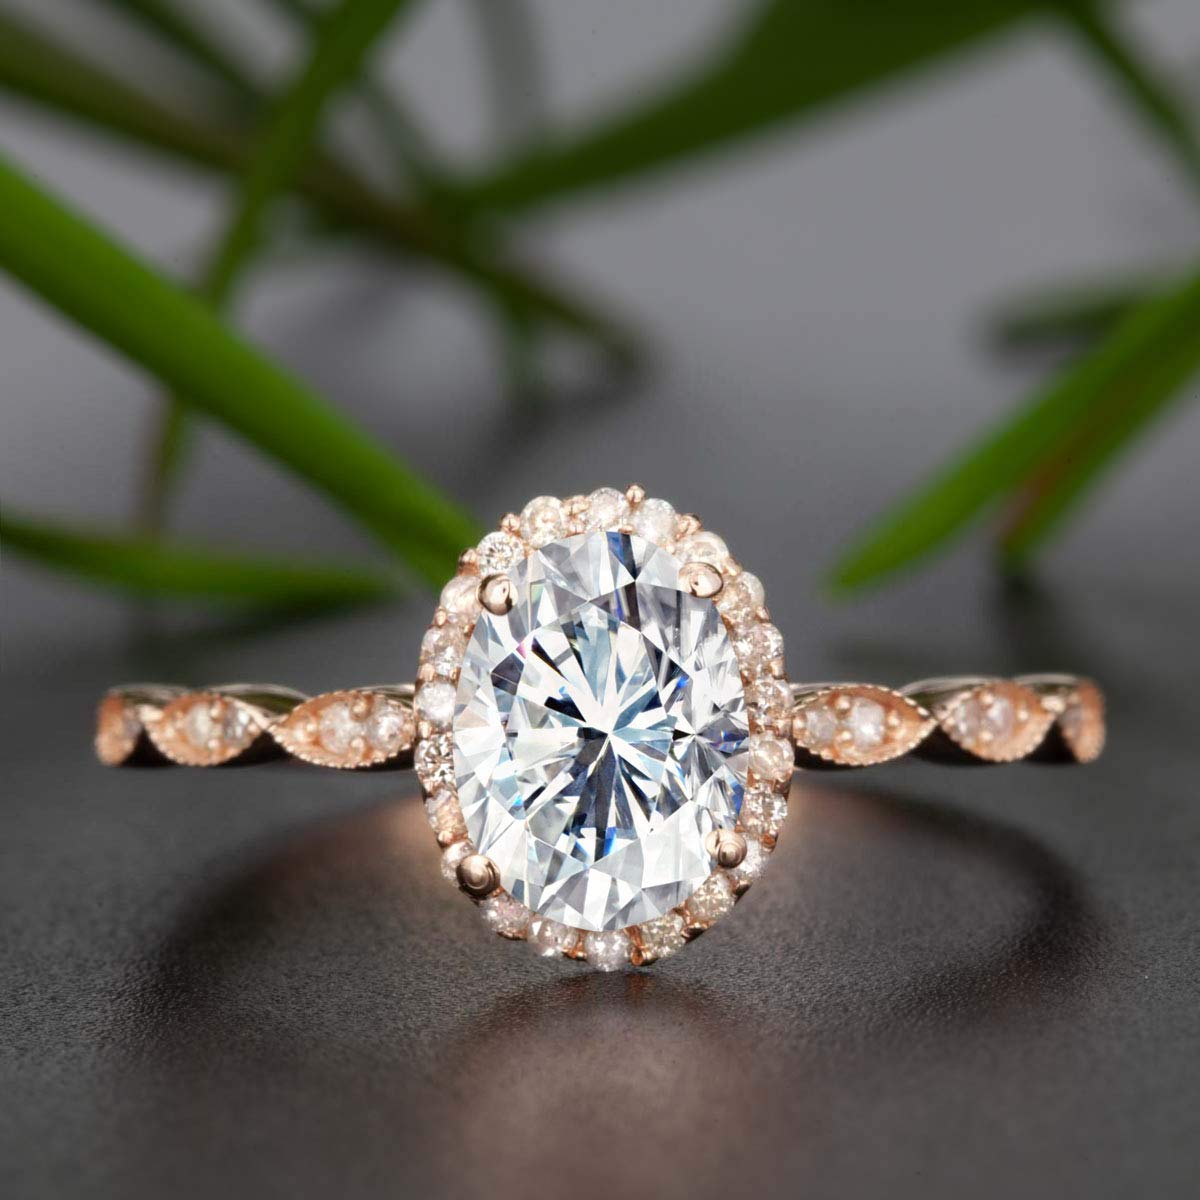 Amazon Com 1 50 Carat Oval Cut Moissanite And Diamond Halo Engagement Ring In Rose Gold Handmade